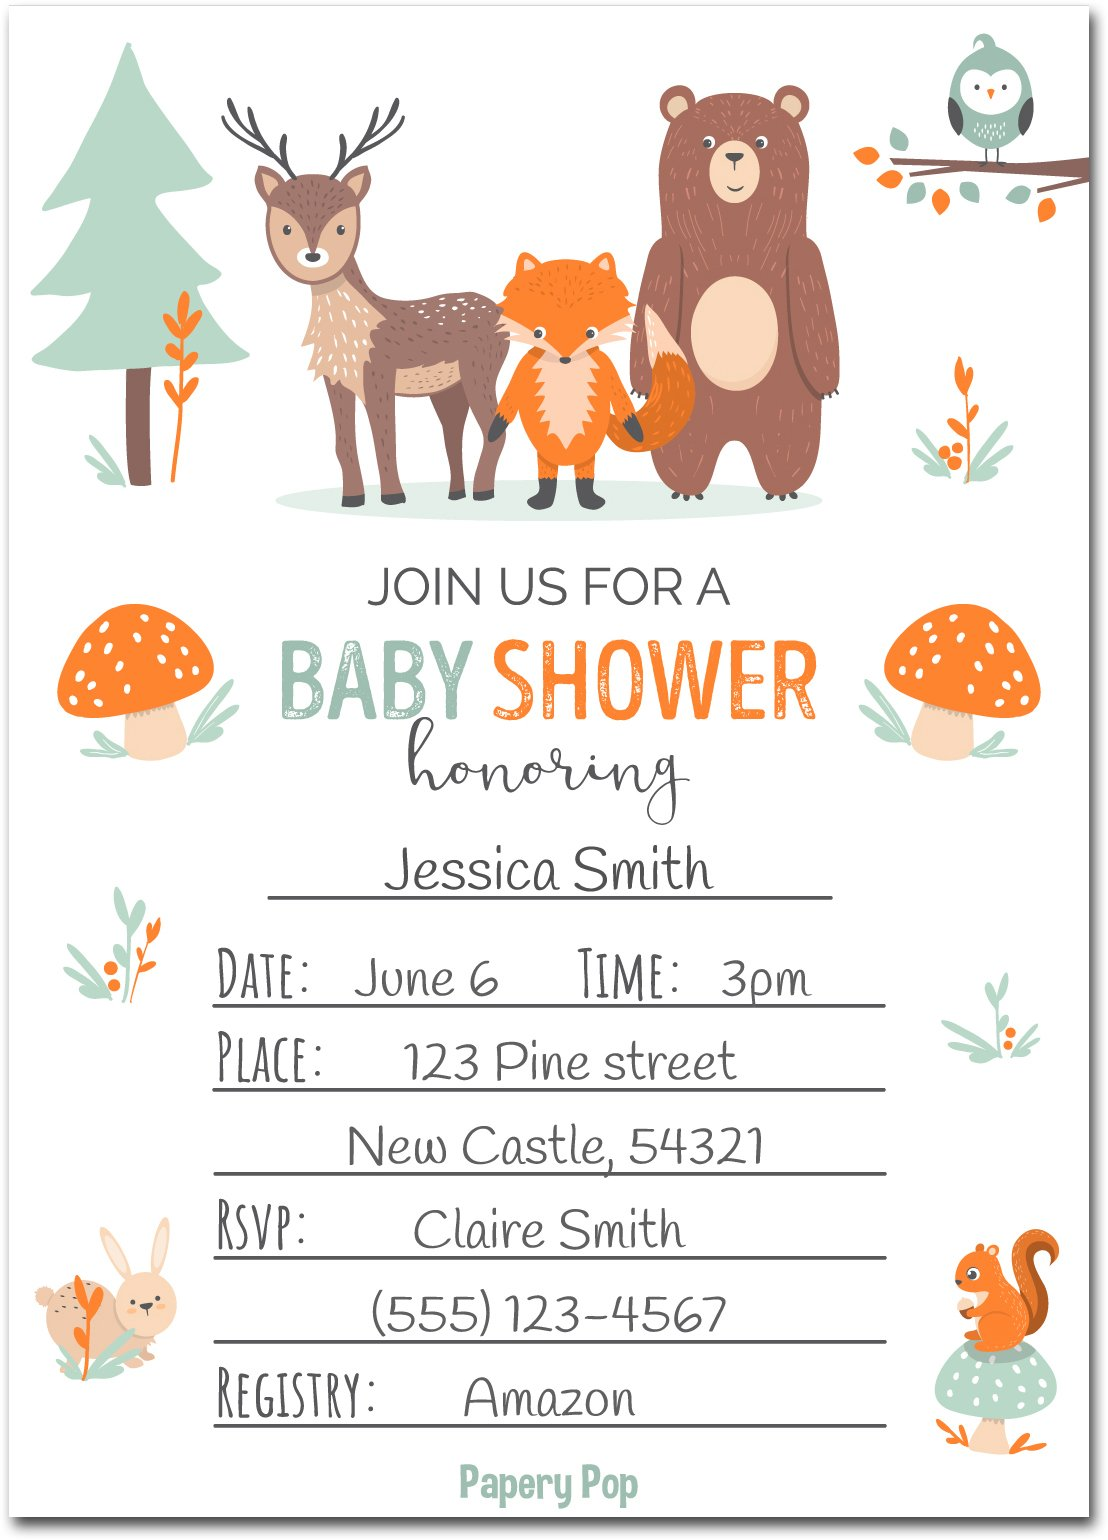 Papery Pop 30 Baby Shower Invitations Boy or Girl with Envelopes (30 Pack) - Gender Neutral - Fits Perfectly with Woodland Animals Baby Shower Decorations and Supplies by Papery Pop (Image #3)